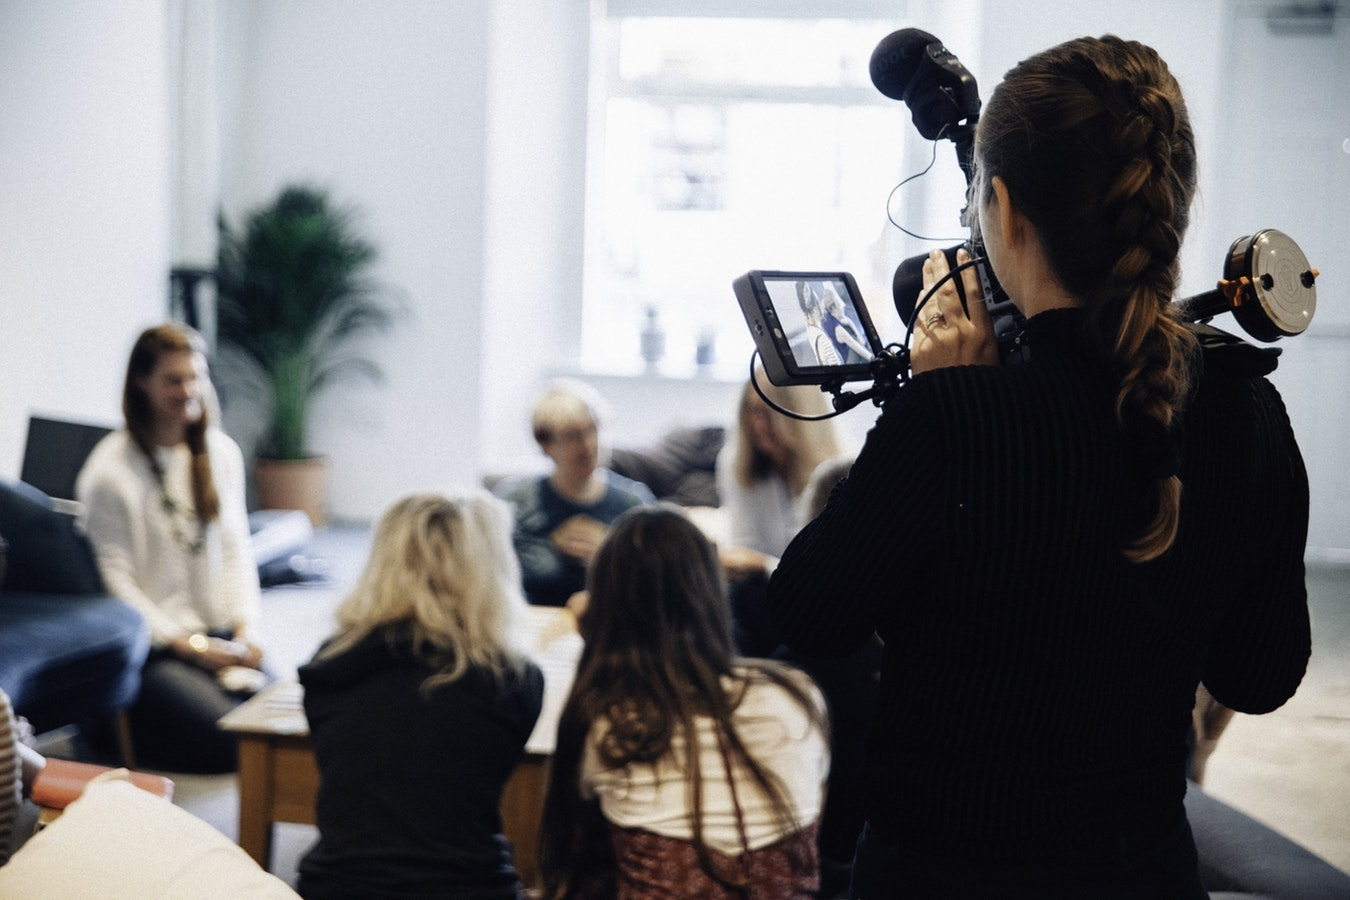 Videographer films a productive meeting